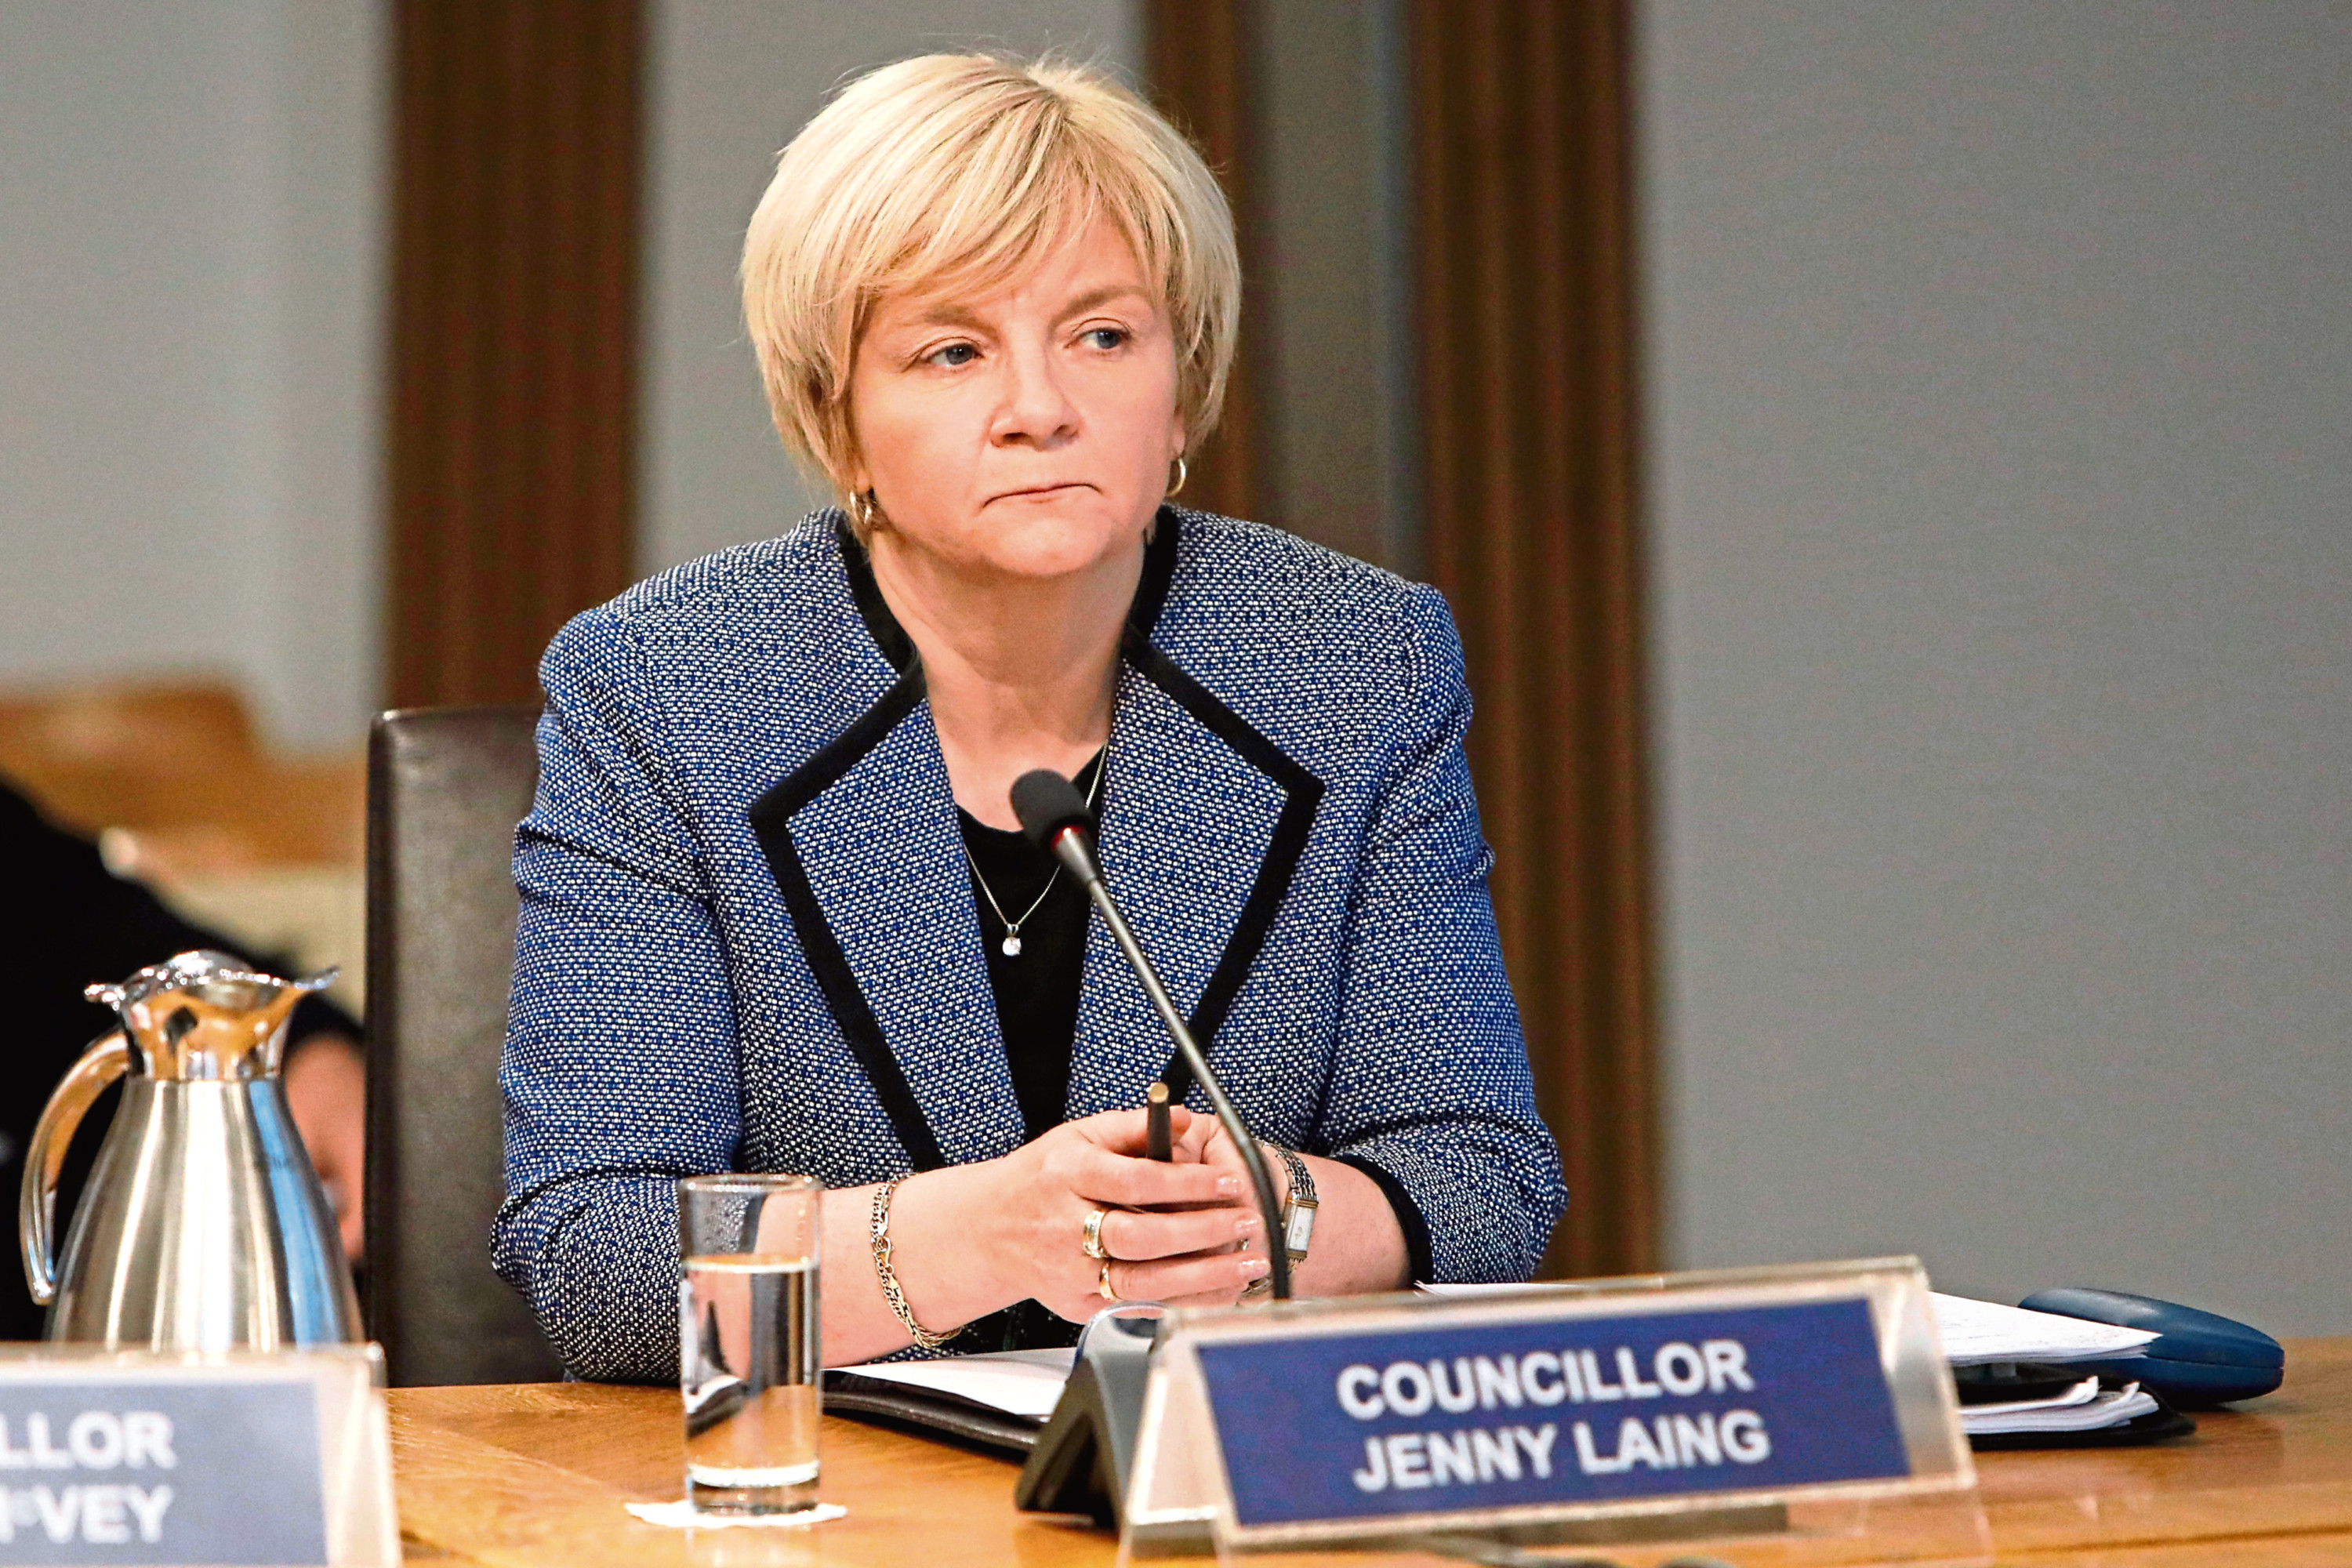 Councillor Jenny Laing